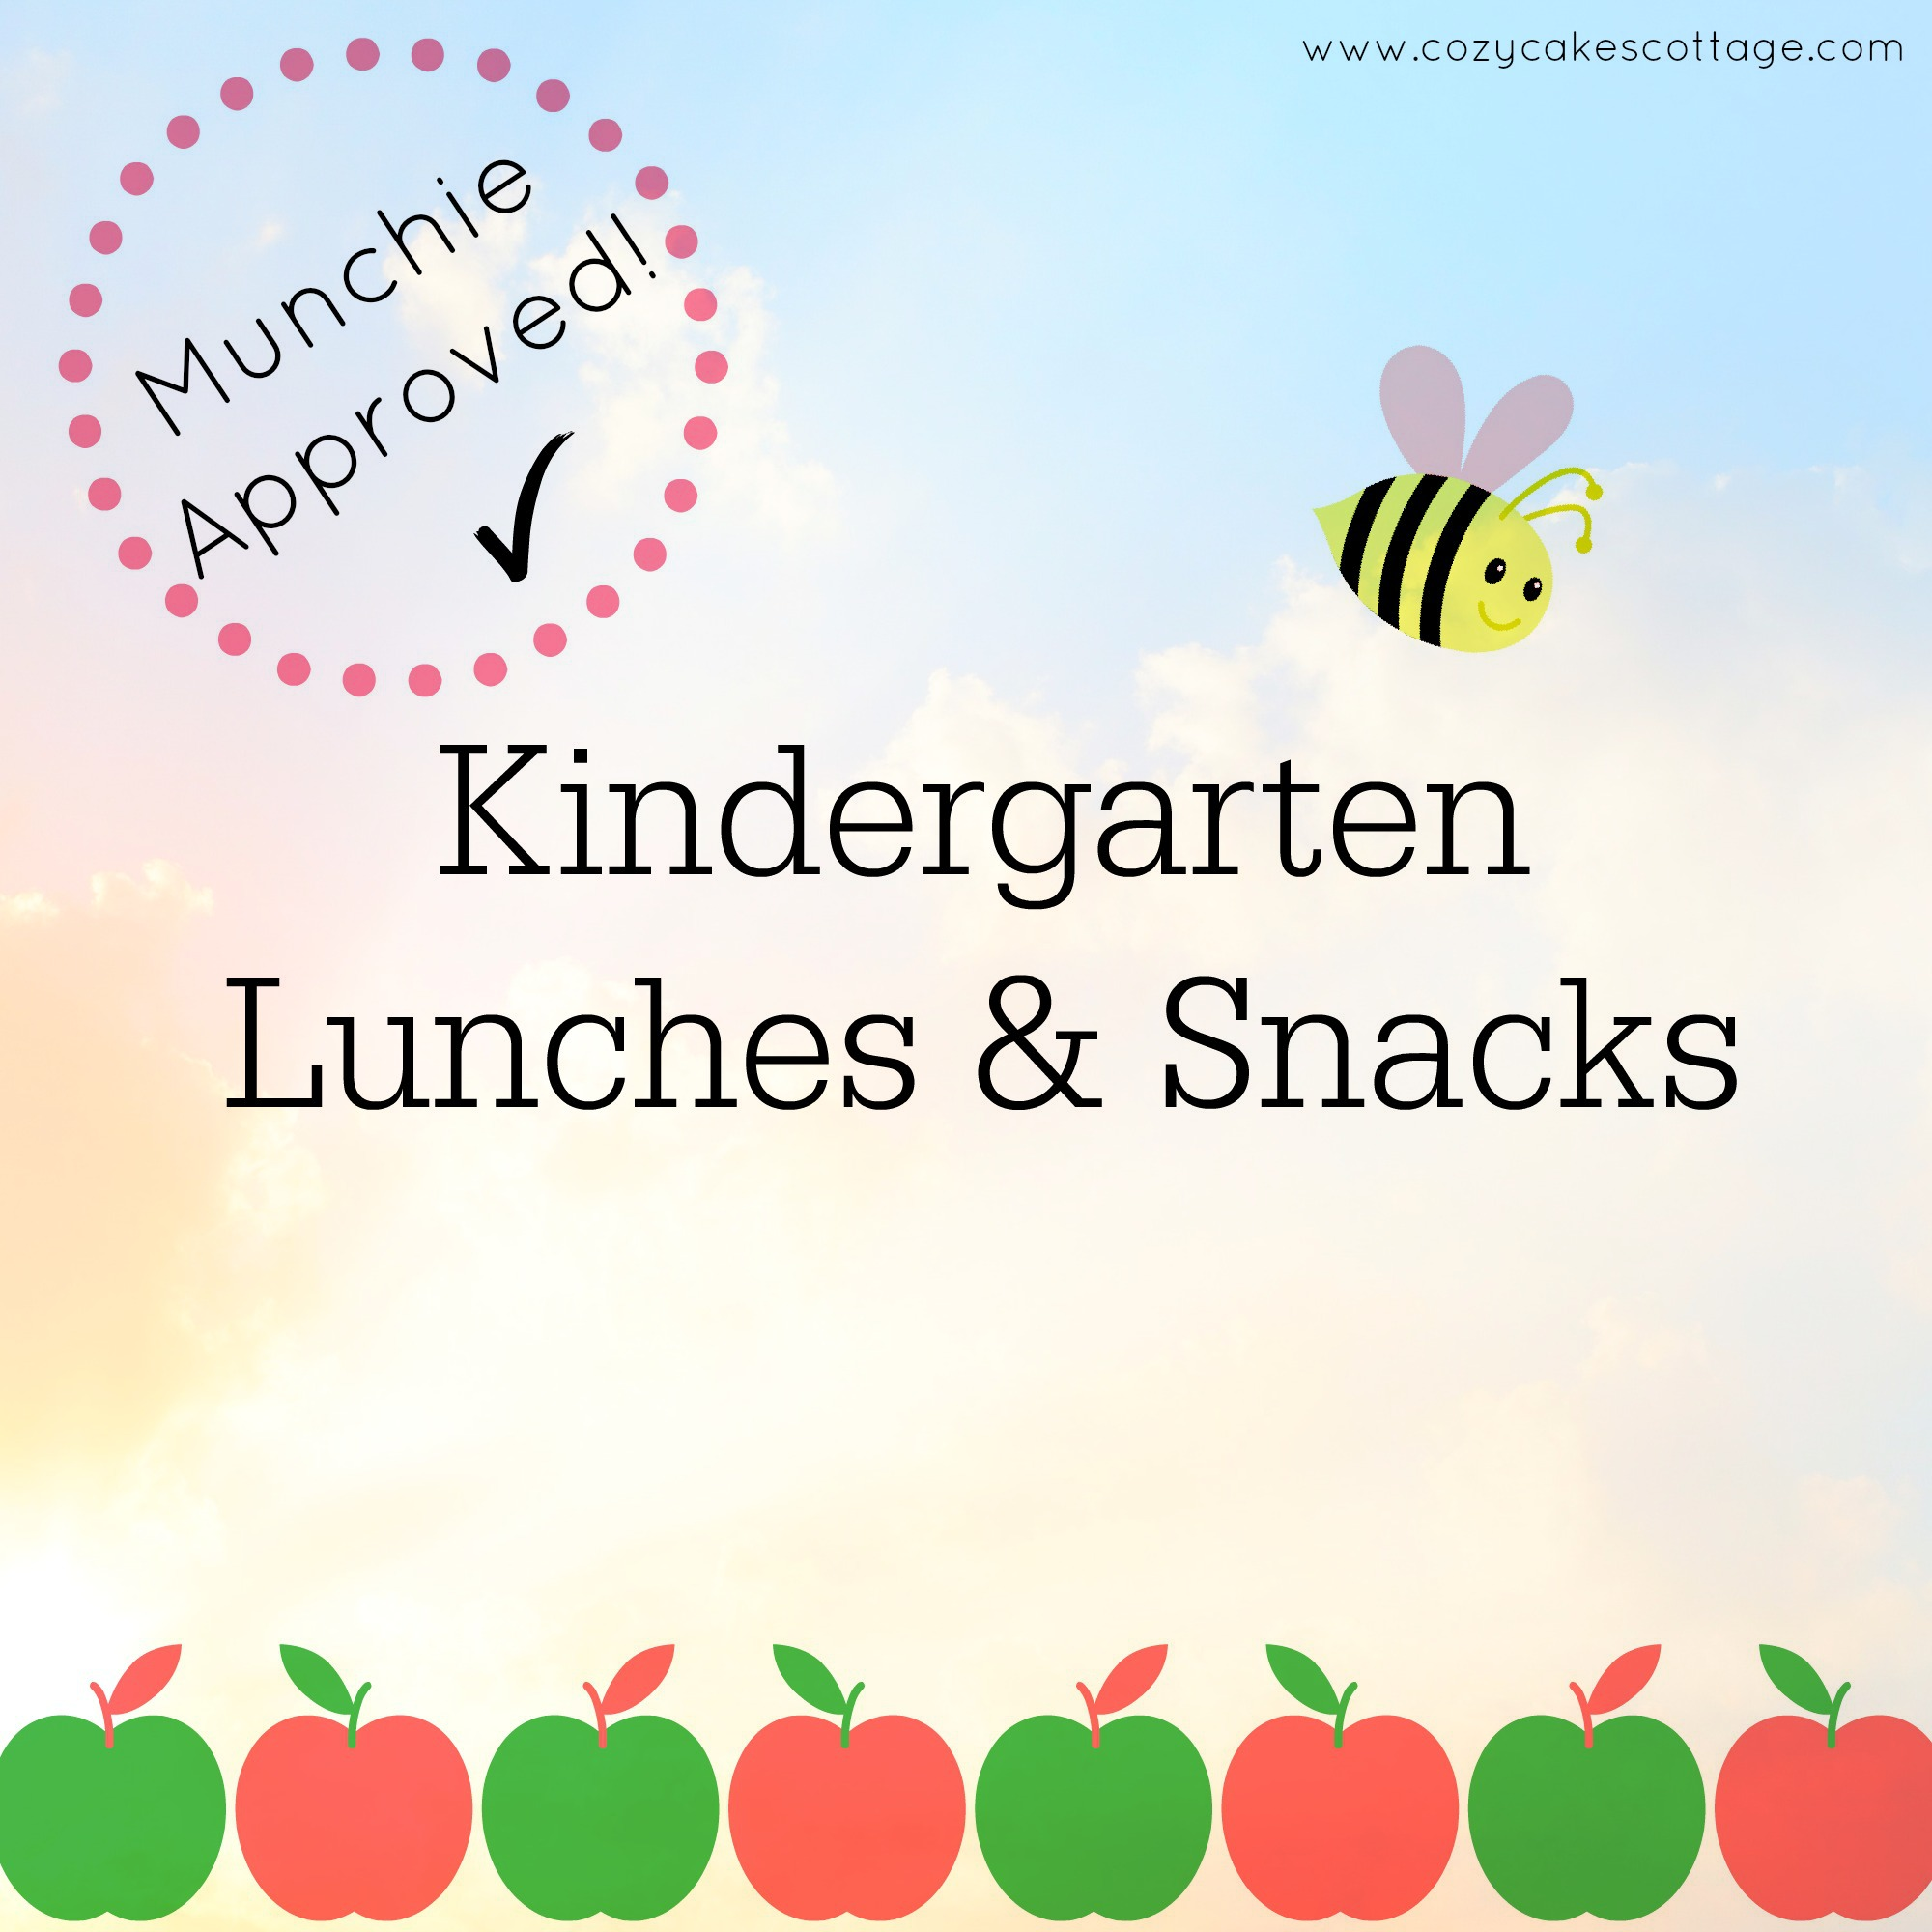 Kindergarten Lunches and Snacks cover pm clouds